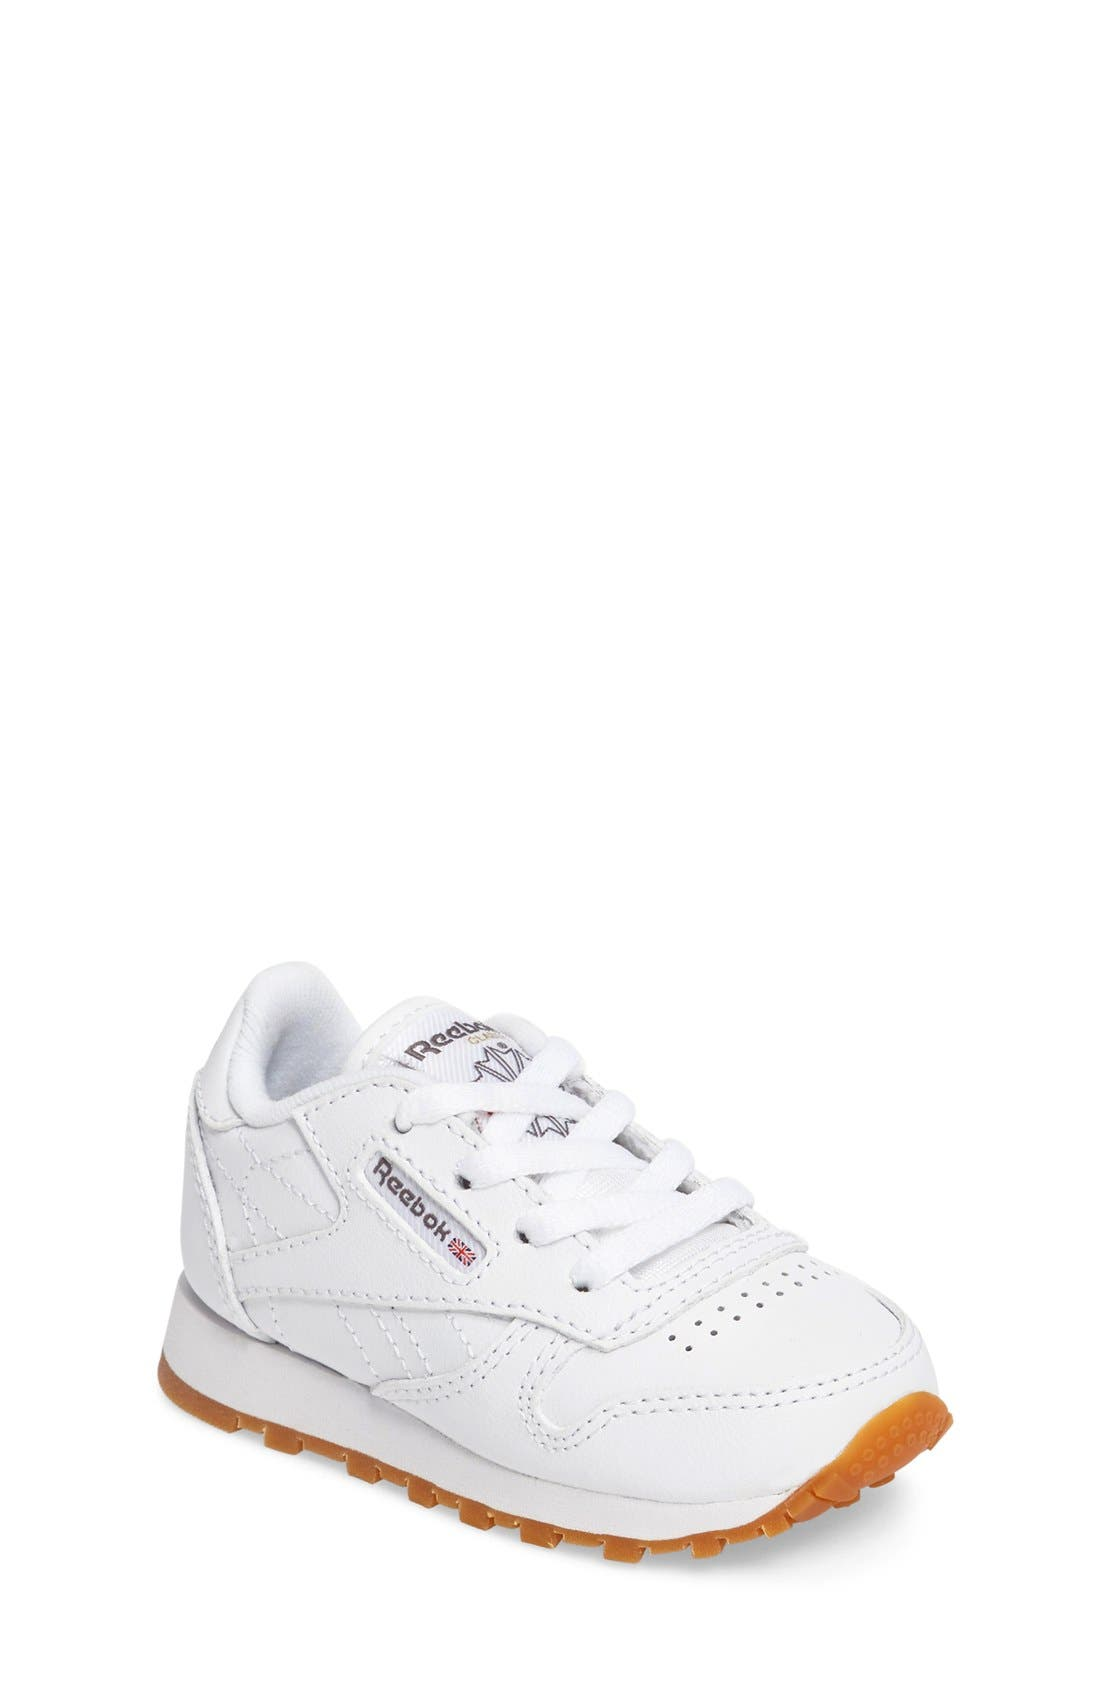 Reebok Classic Gum Sneaker (Baby, Walker & Toddler) (Regular Retail Price: $41.95)